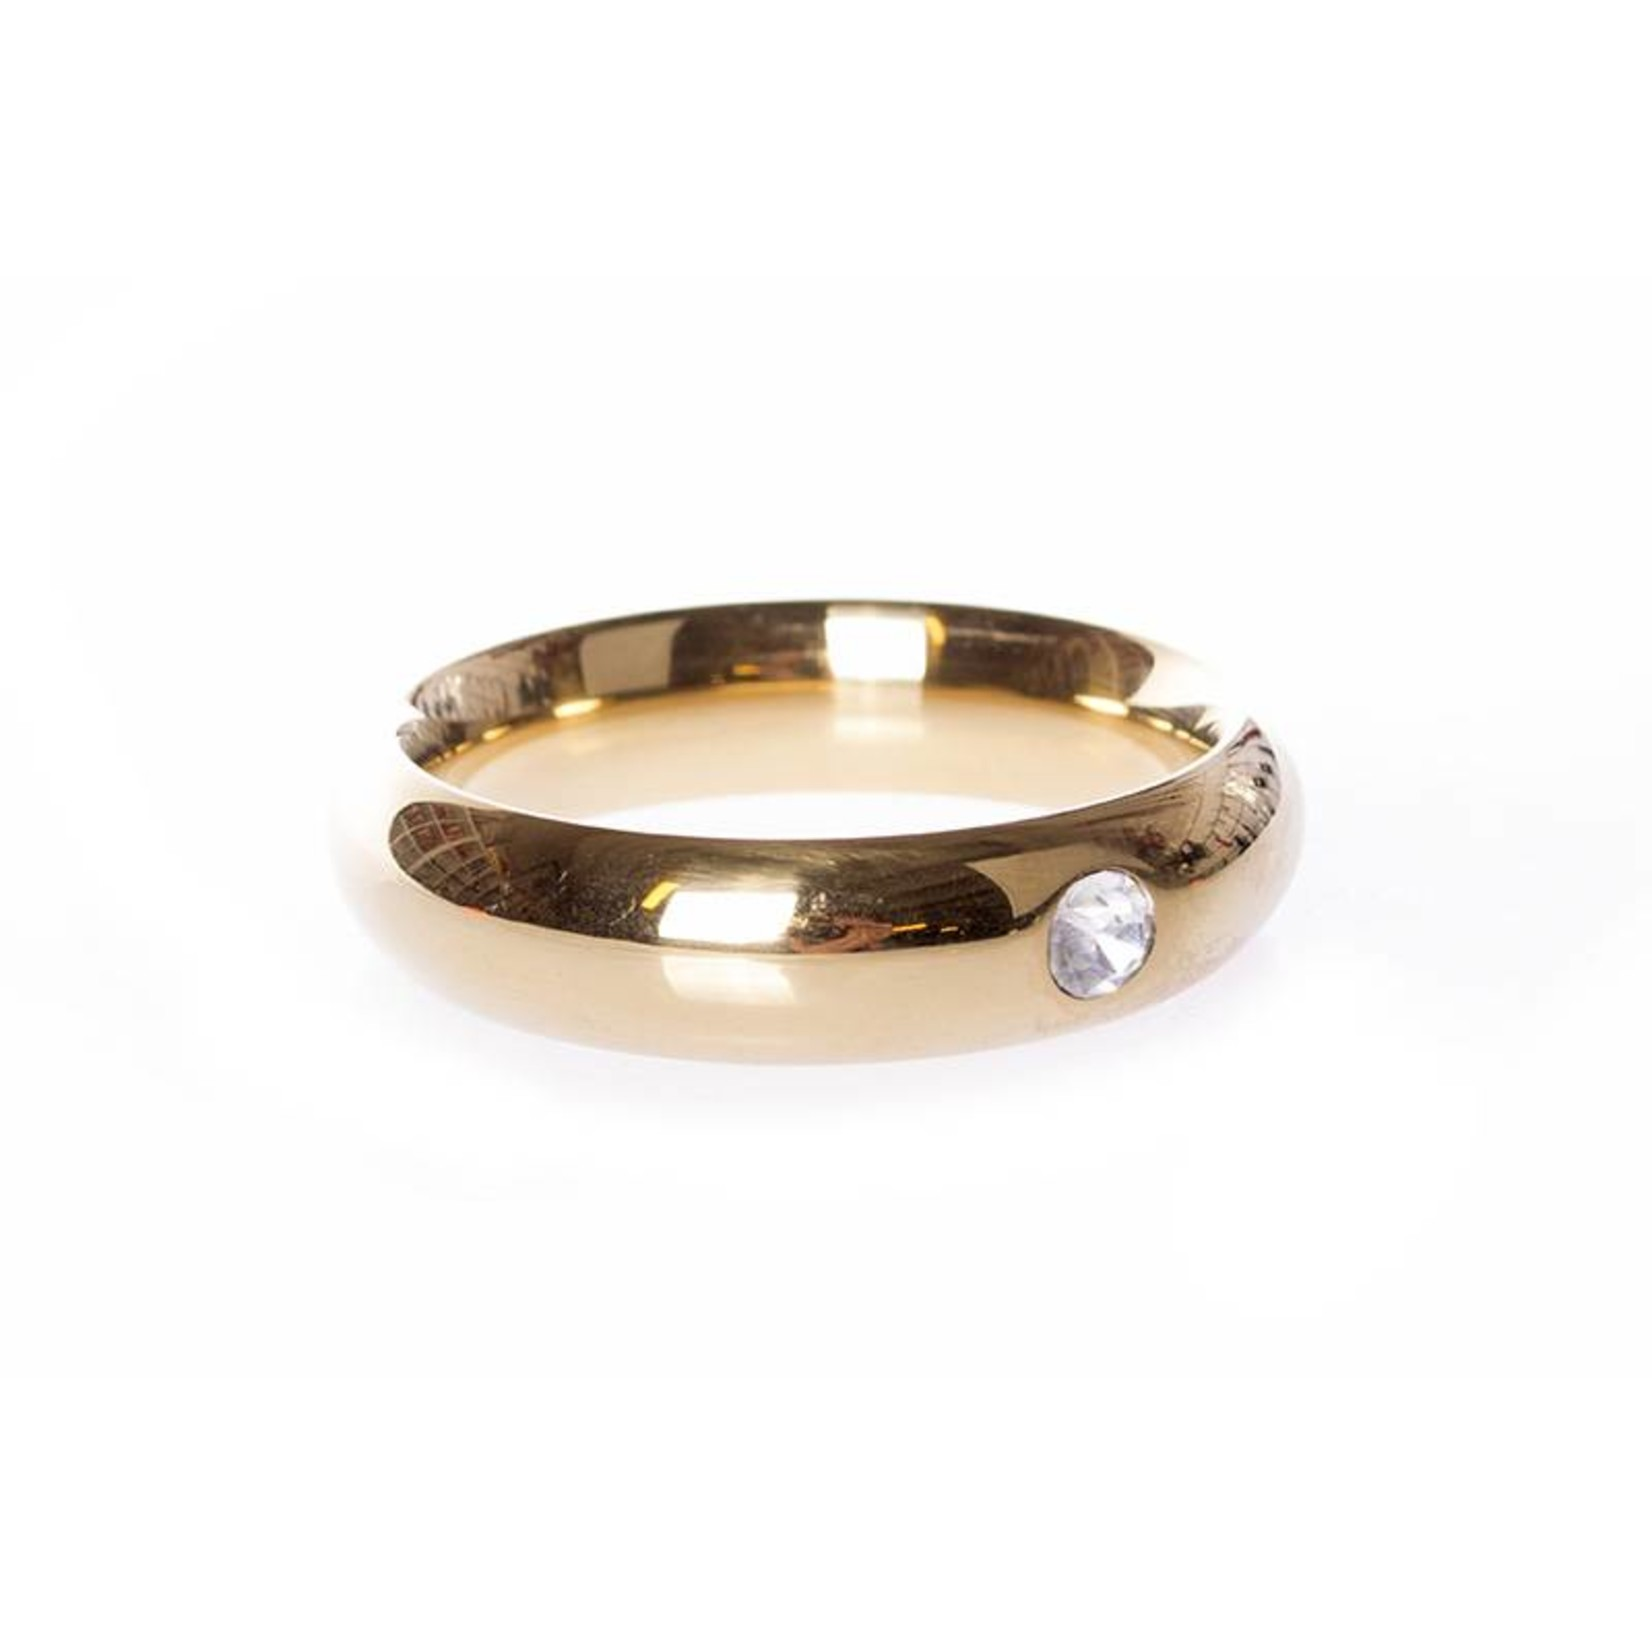 KIOTOS Steel Gold Donut Cockring with Jewel - 50 mm